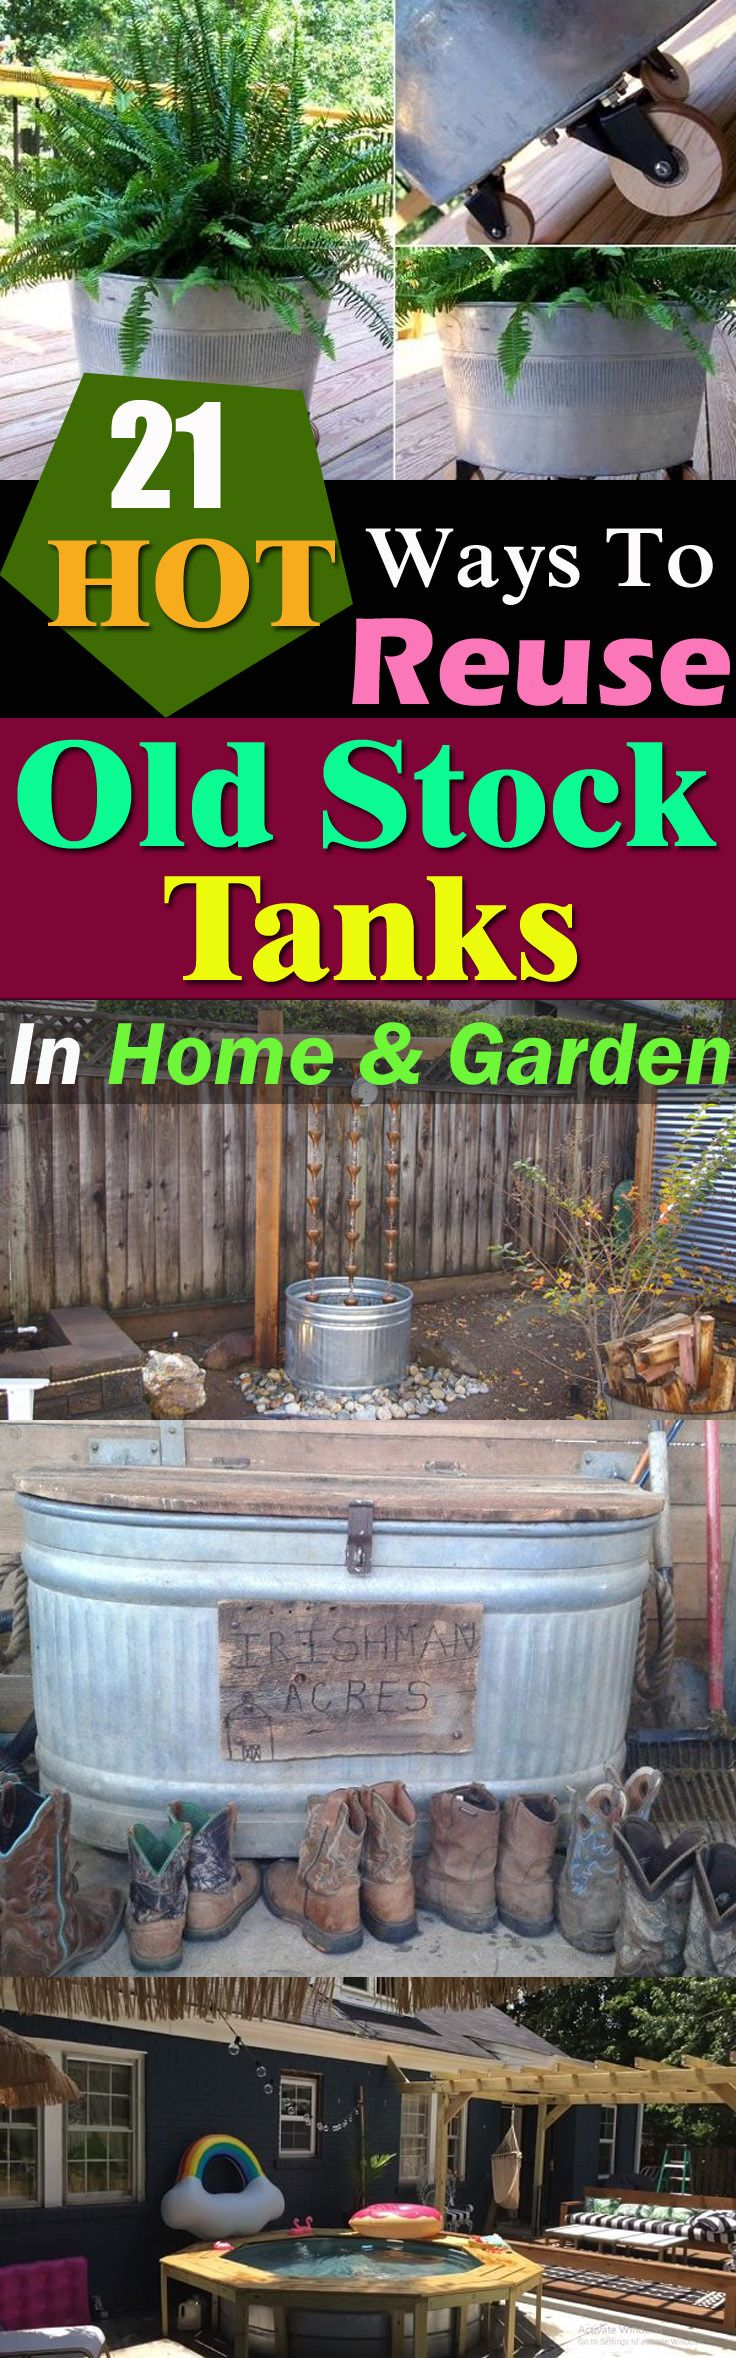 Super practical DIY stock tank ideas for your home and garden. Convert and repurpose them into something useful!